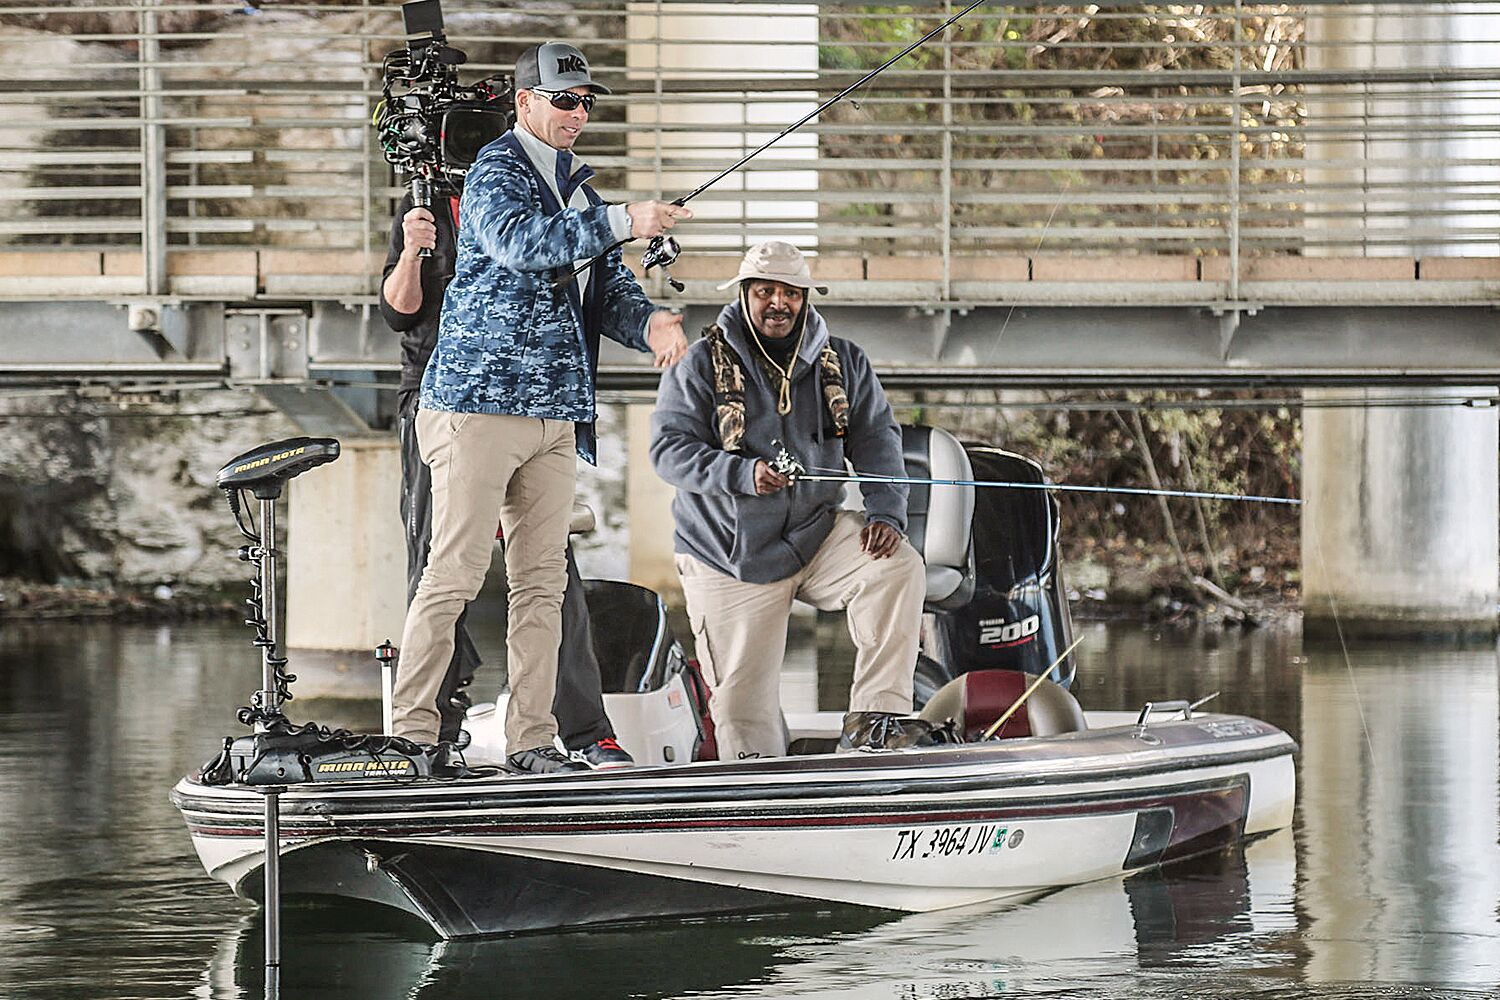 e1c444d56ab6e The Beauty of Street Fishing - MidWest Outdoors